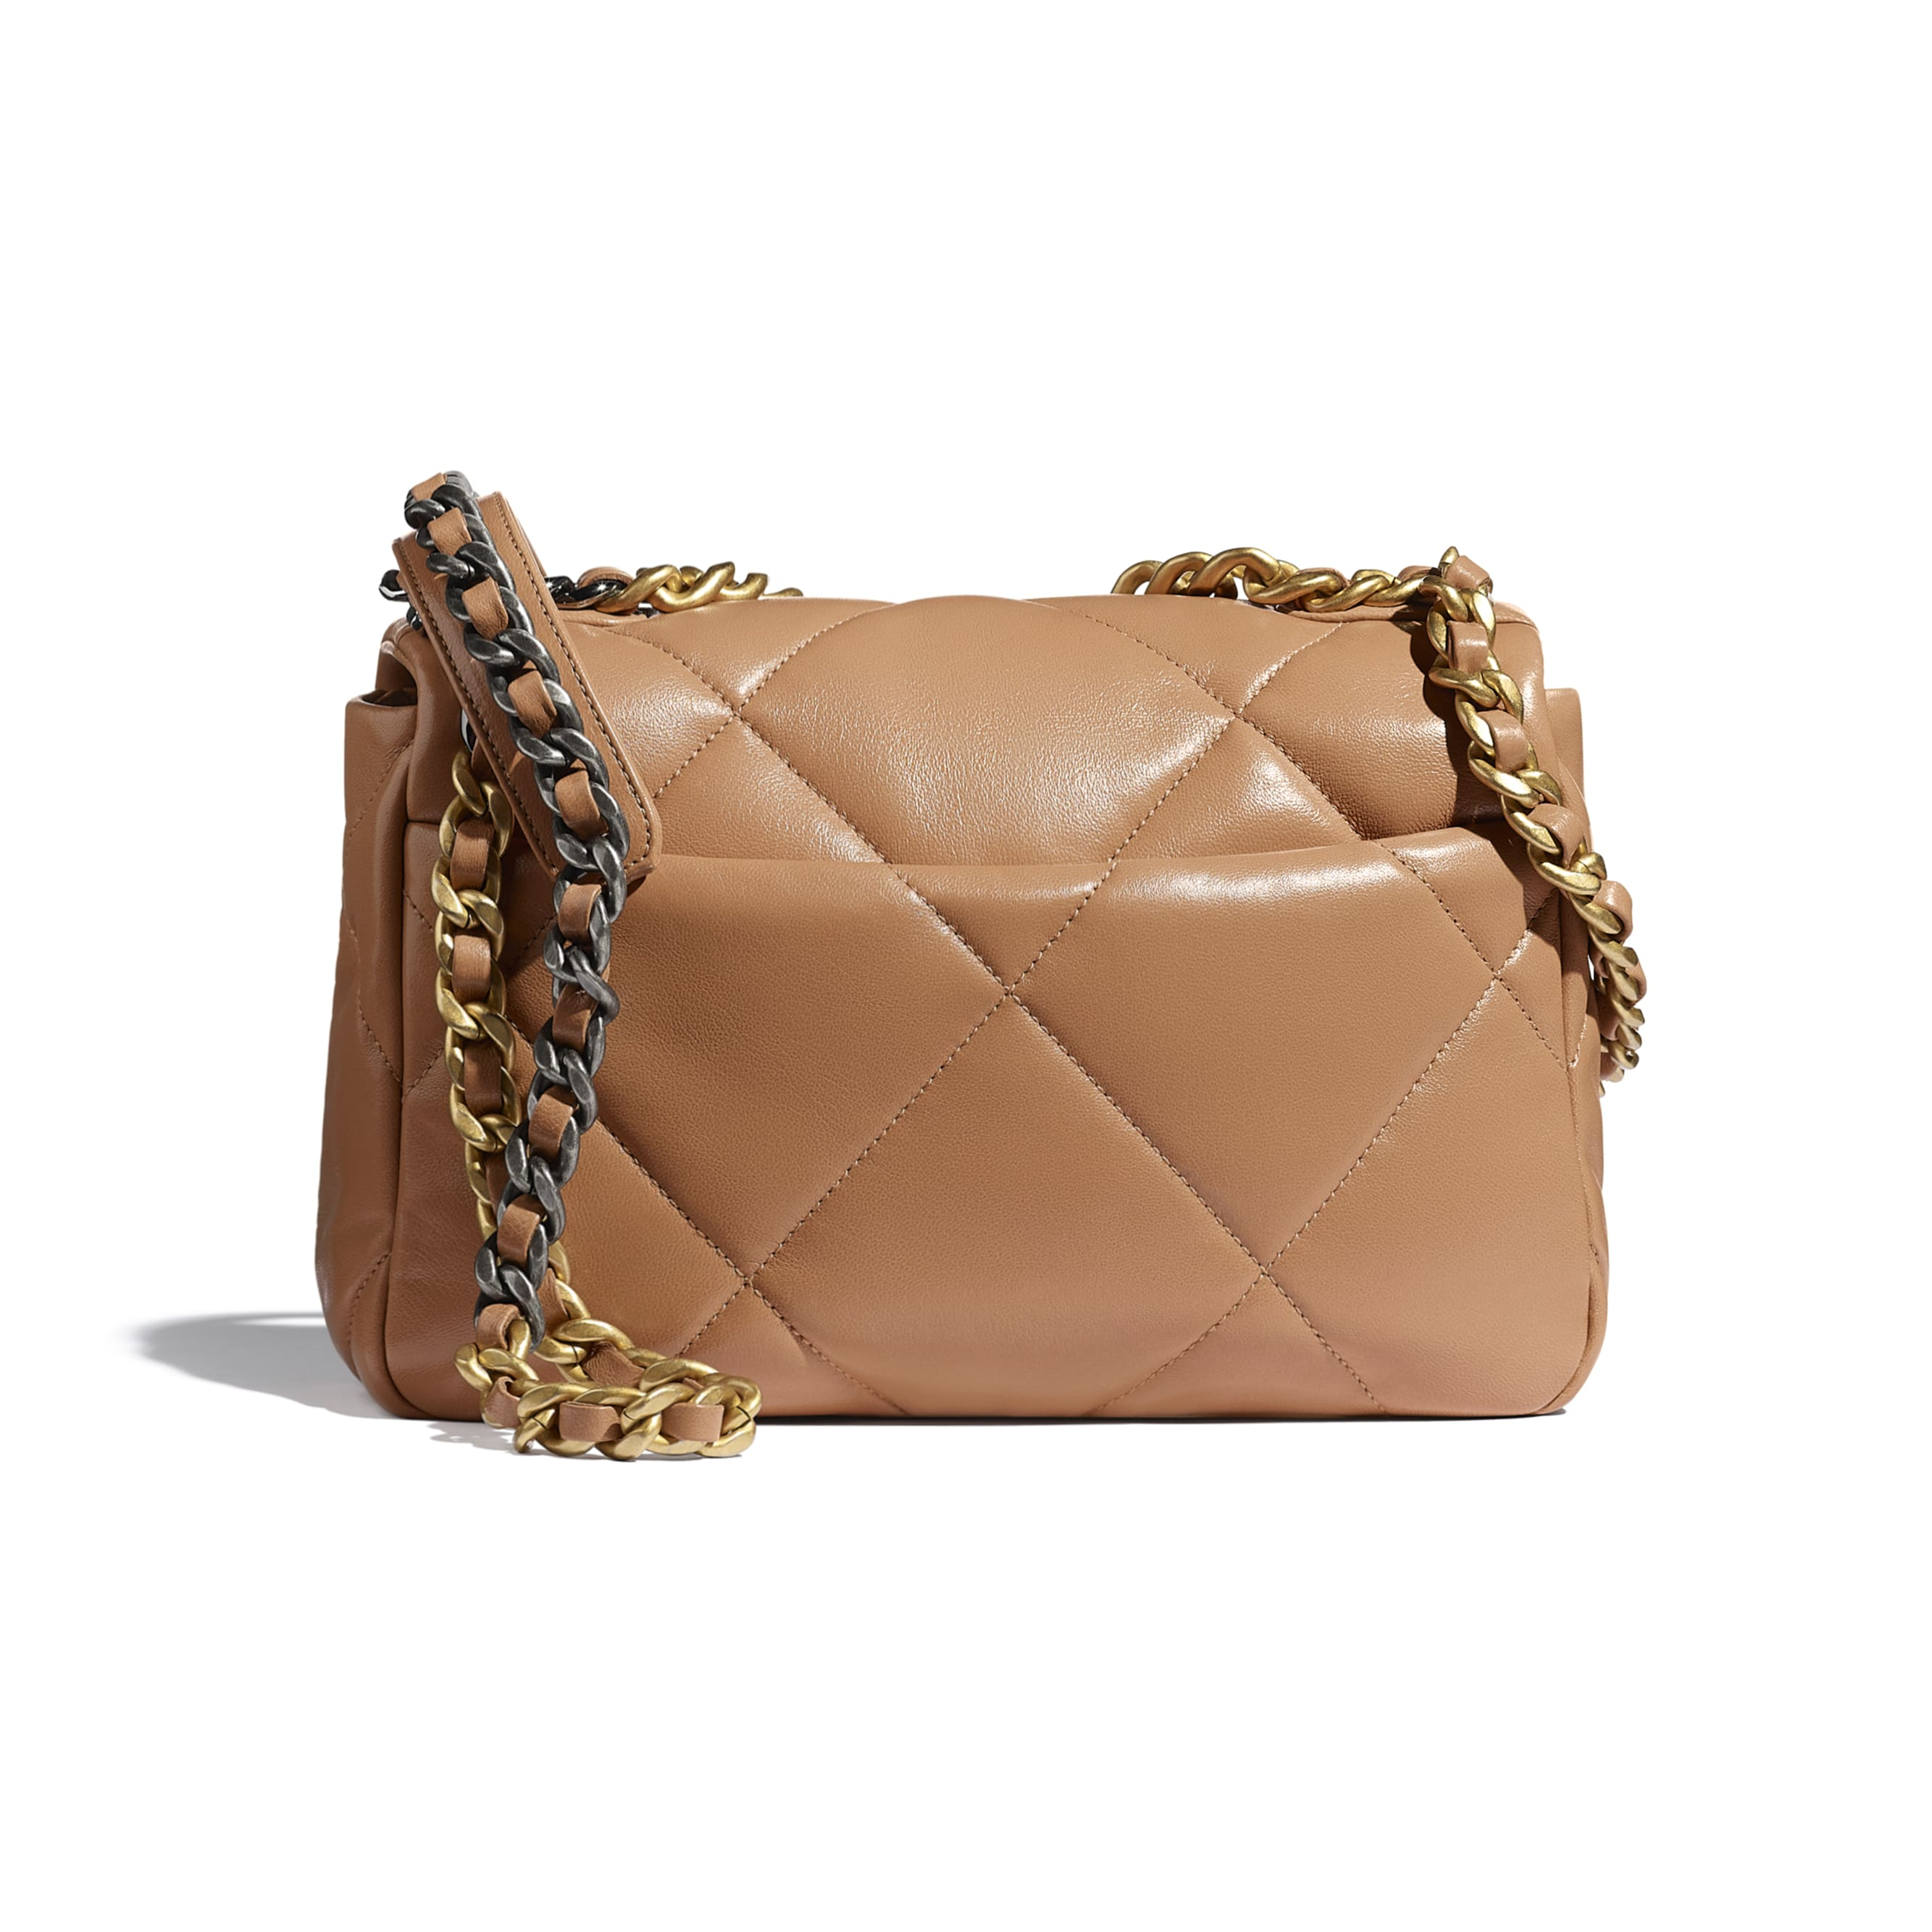 CHANEL 19 Handbag - Brown - Lambskin, Gold-Tone, Silver-Tone & Ruthenium-Finish Metal - CHANEL - Alternative view - see standard sized version